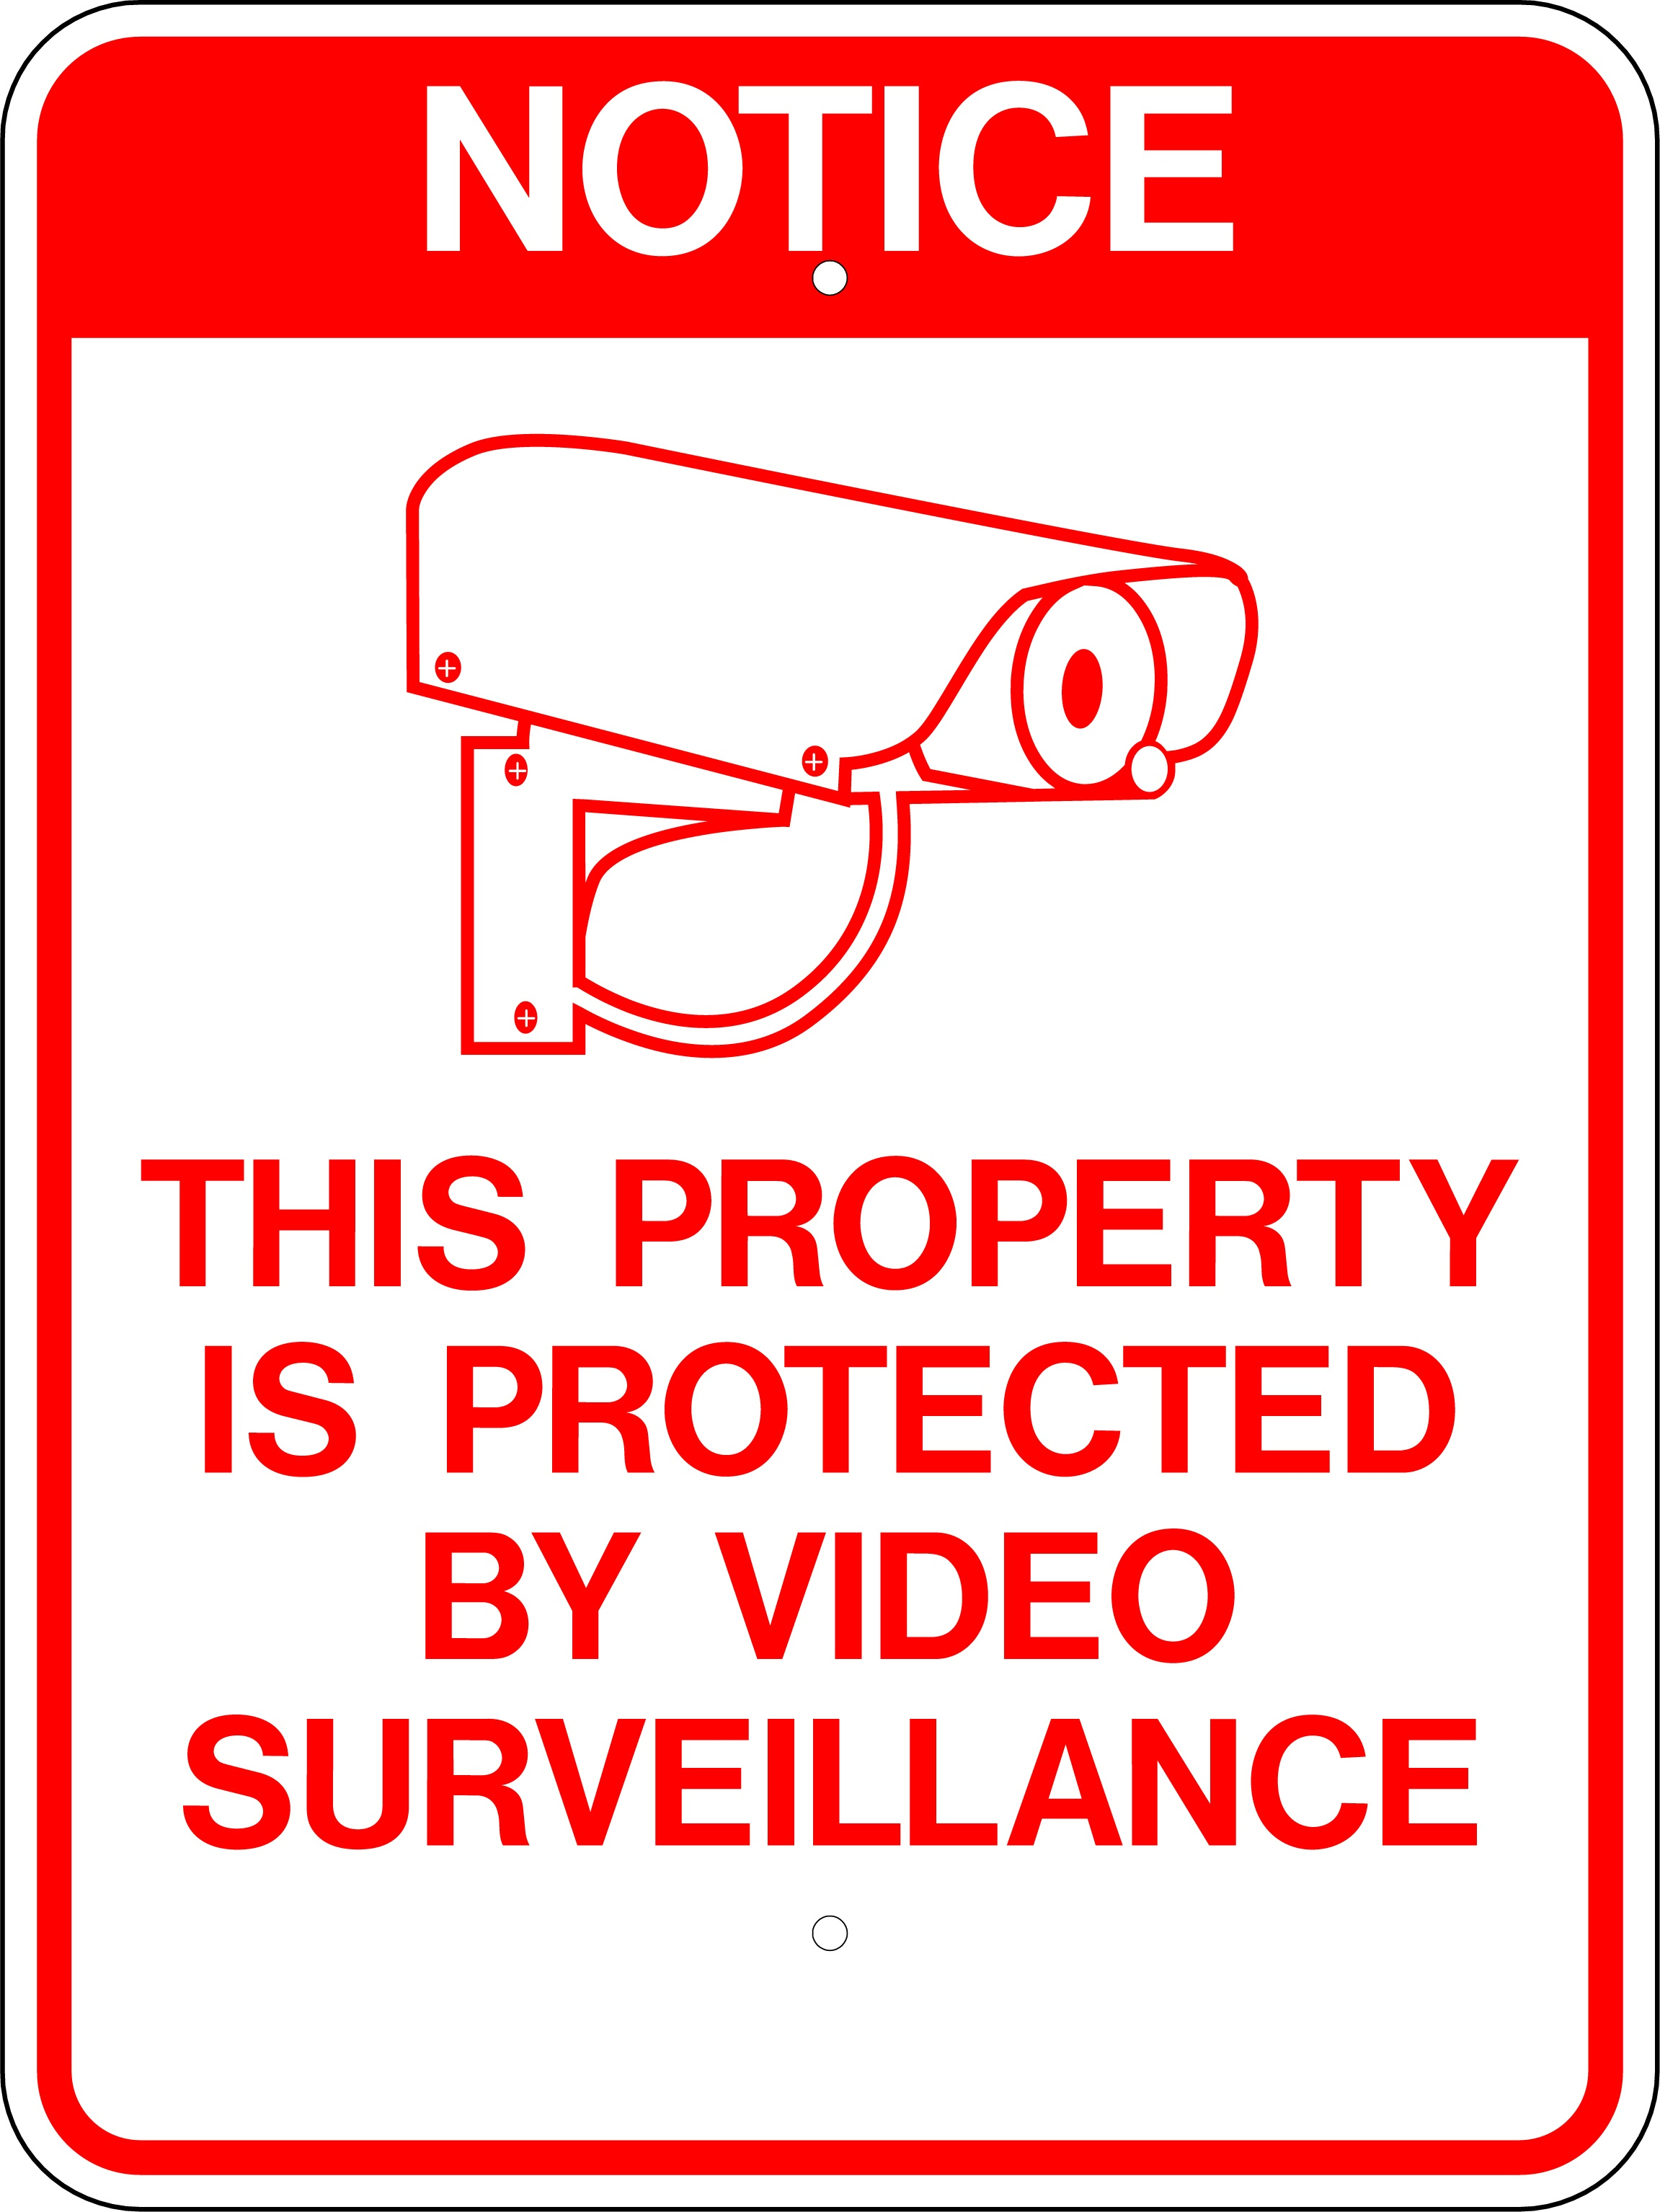 W.g.n Flag & Decorating Co. > Stock Signs & Banners > Surveillance - Printable Video Surveillance Signs Free